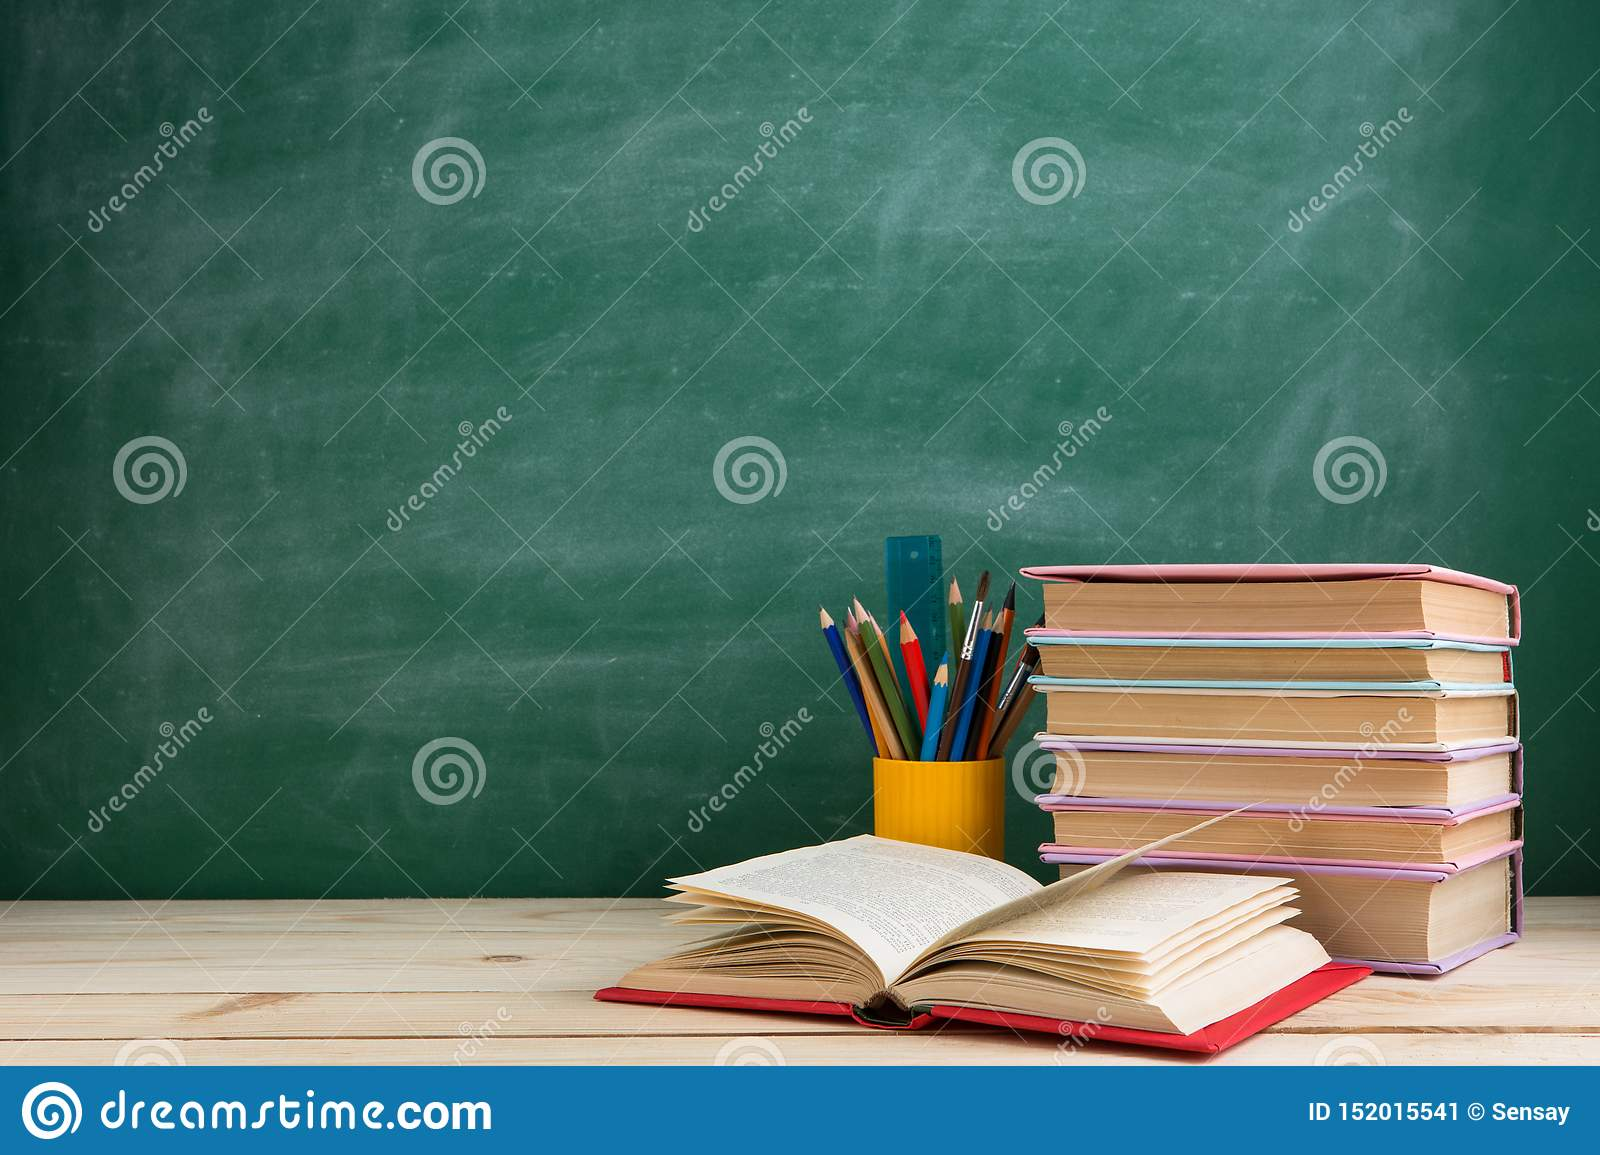 Education and reading concept - group of colorful books on the wooden table in the classroom, blackboard background